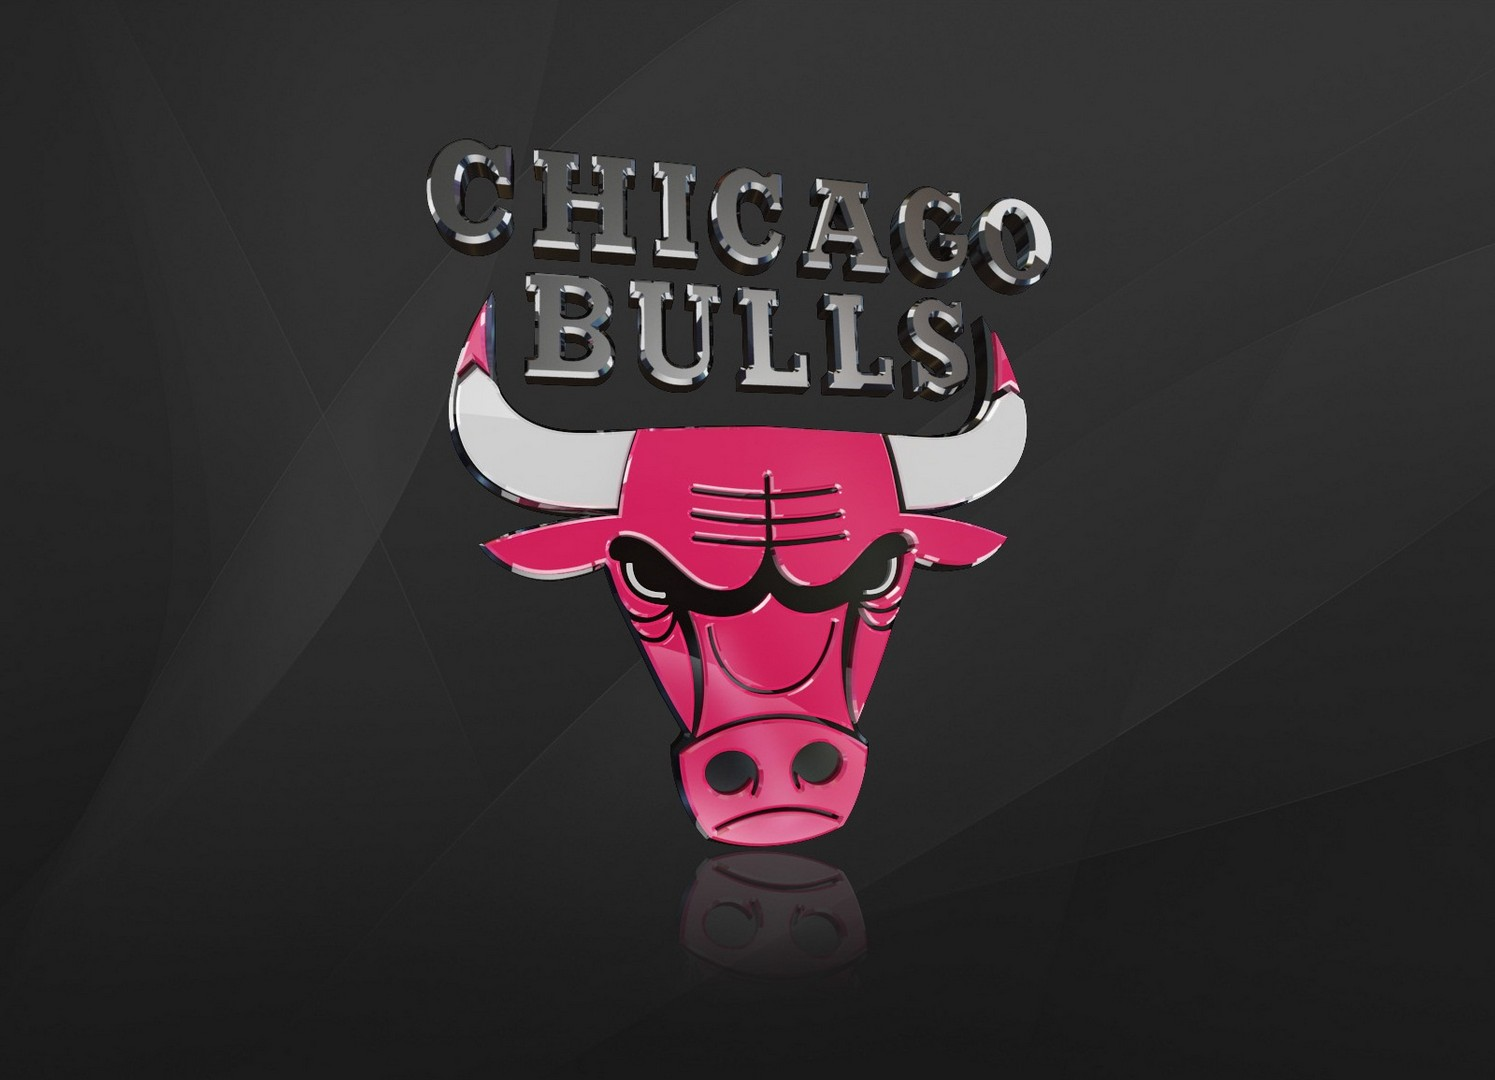 Chicago Bulls Logo Background Widescreen Wallpaper Big Fan of NBA 1495x1080